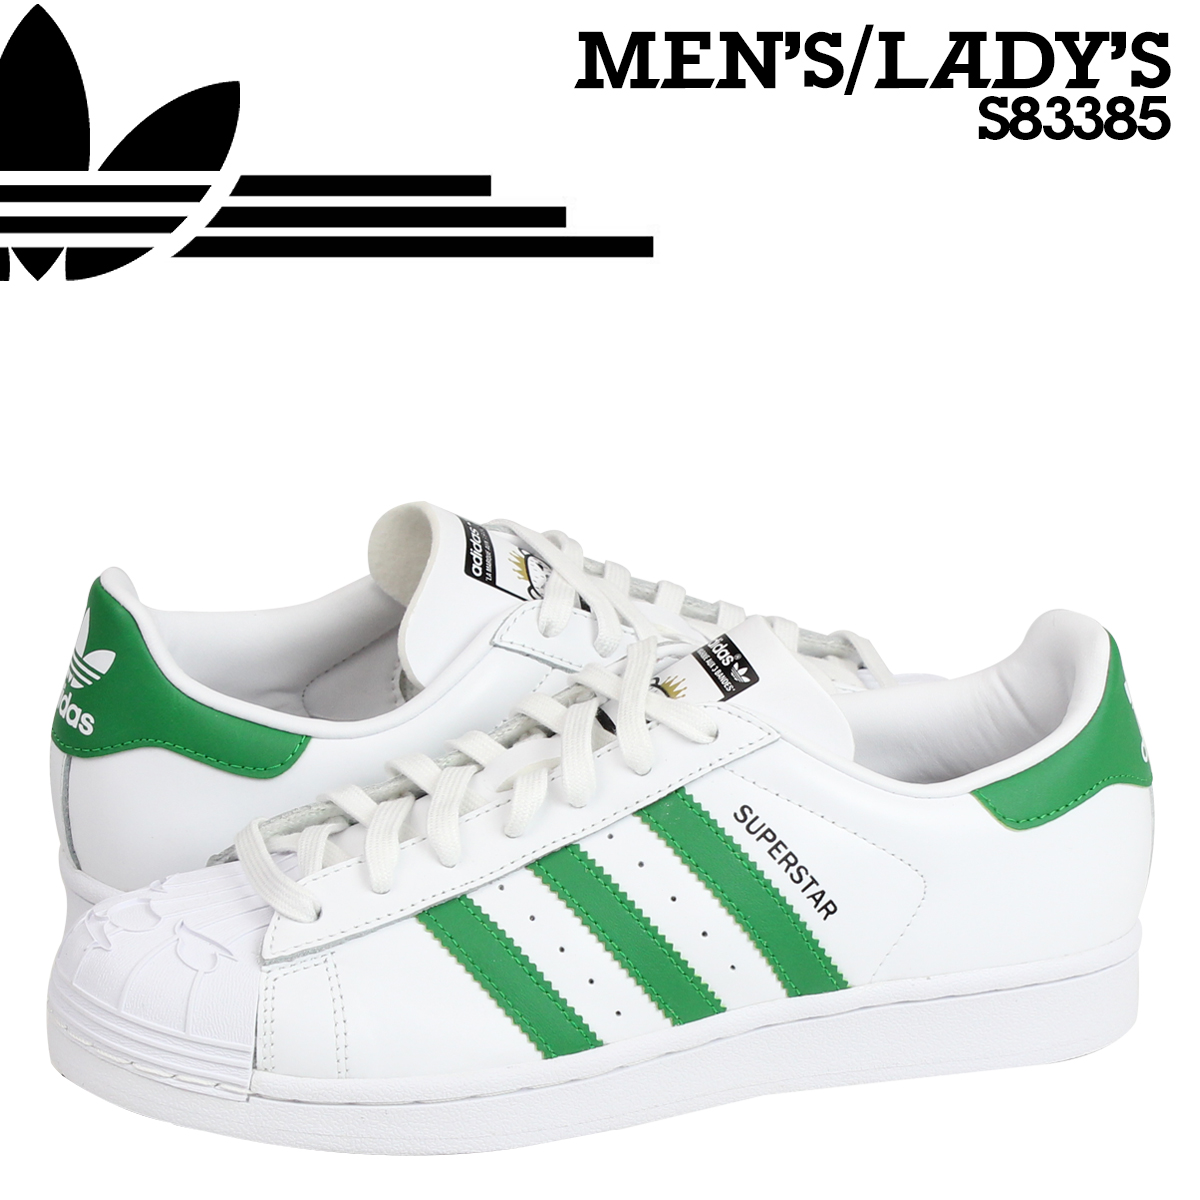 adidas superstar 2 grüne frauen männer adidas originals superstar in den usa